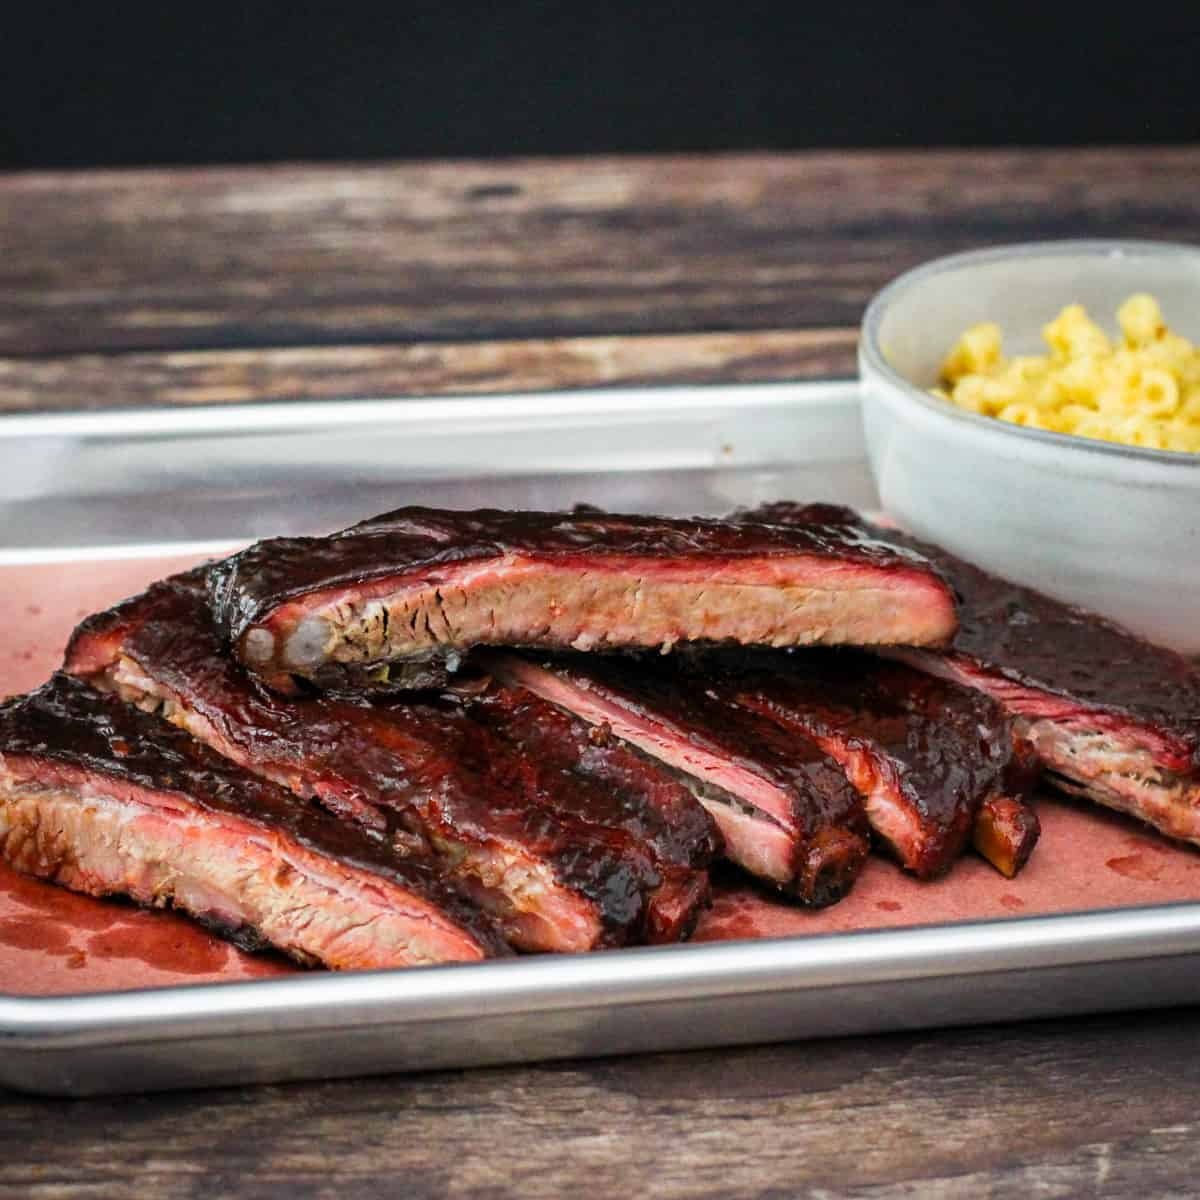 The finished spareribs are shown sliced and served on a platter with a bowl of mac and cheese.